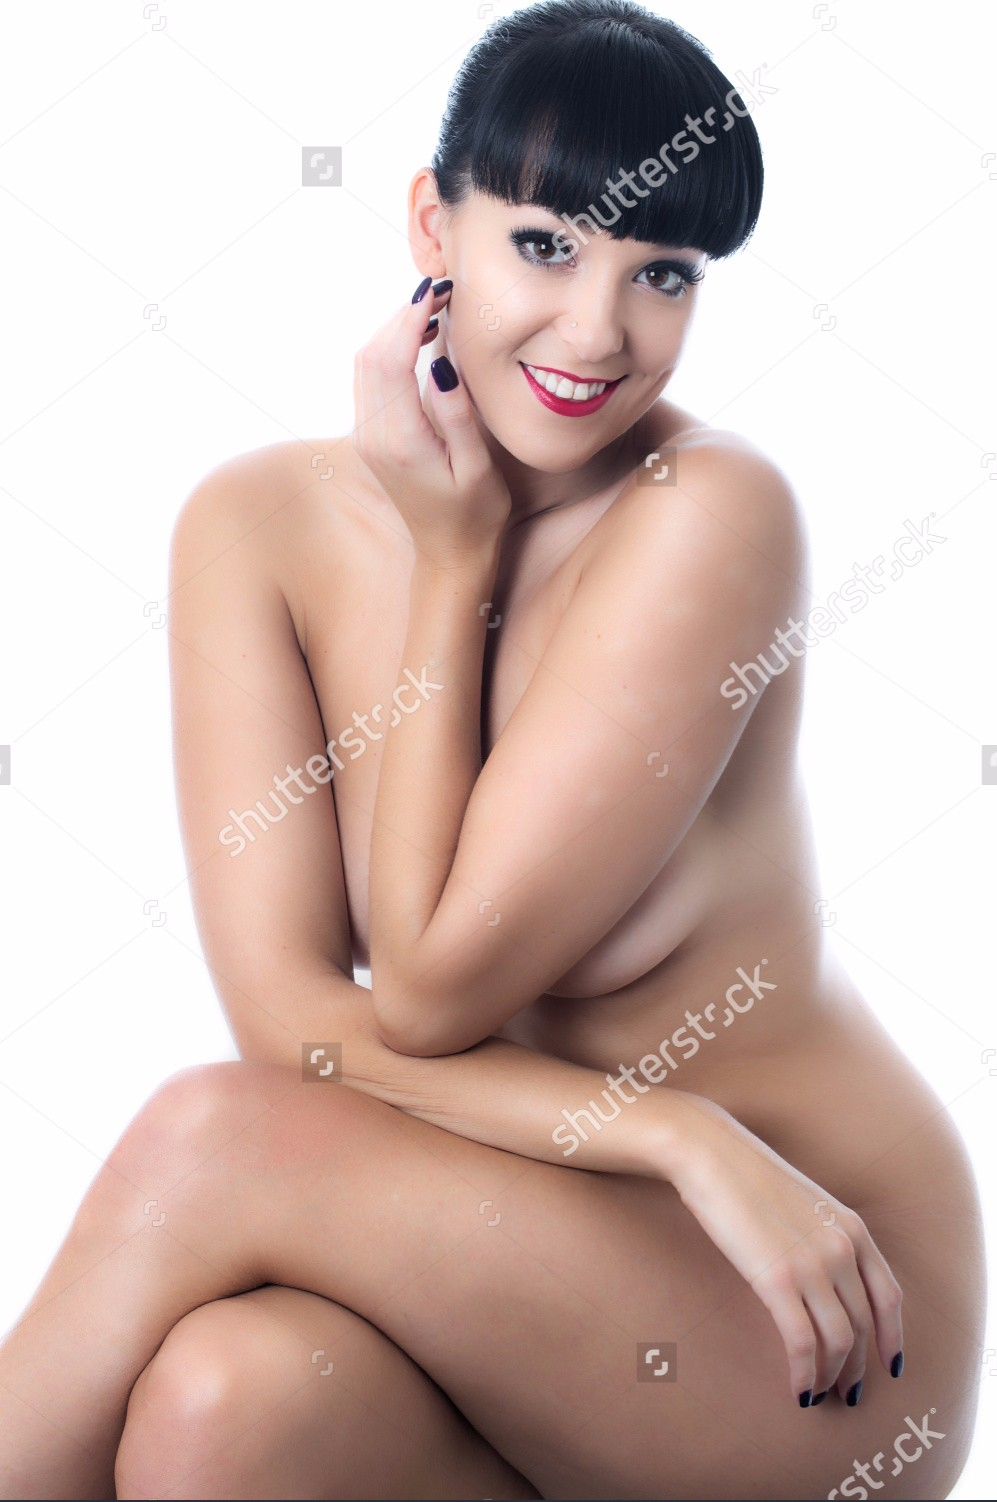 stock-photo-nude-young-lady-sitting-on-a-stool-163722737.jpg